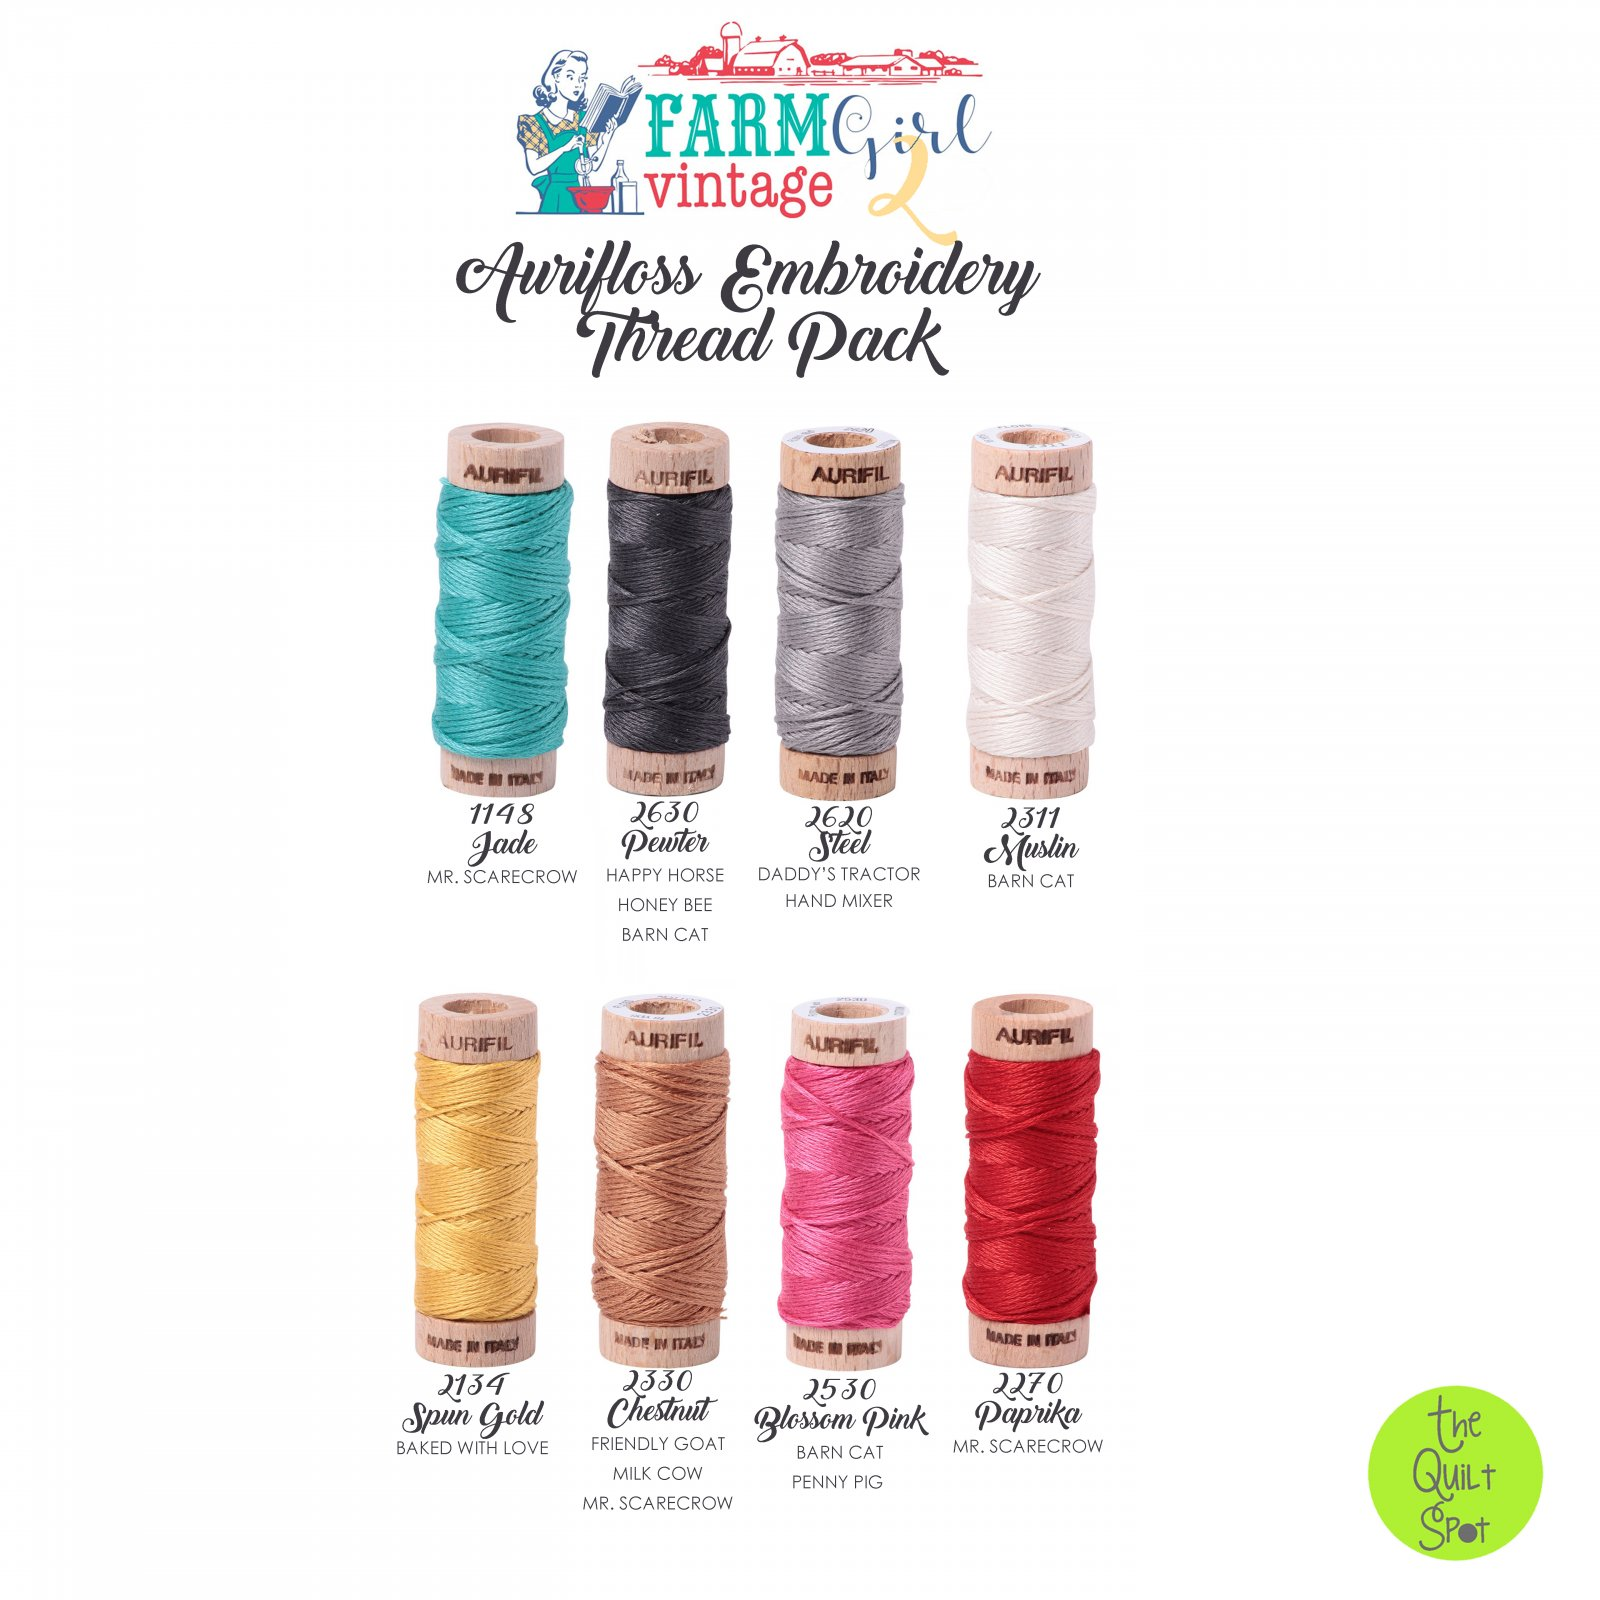 Farm Girl Vintage 2 Aurifloss Embroidery Thread Pack